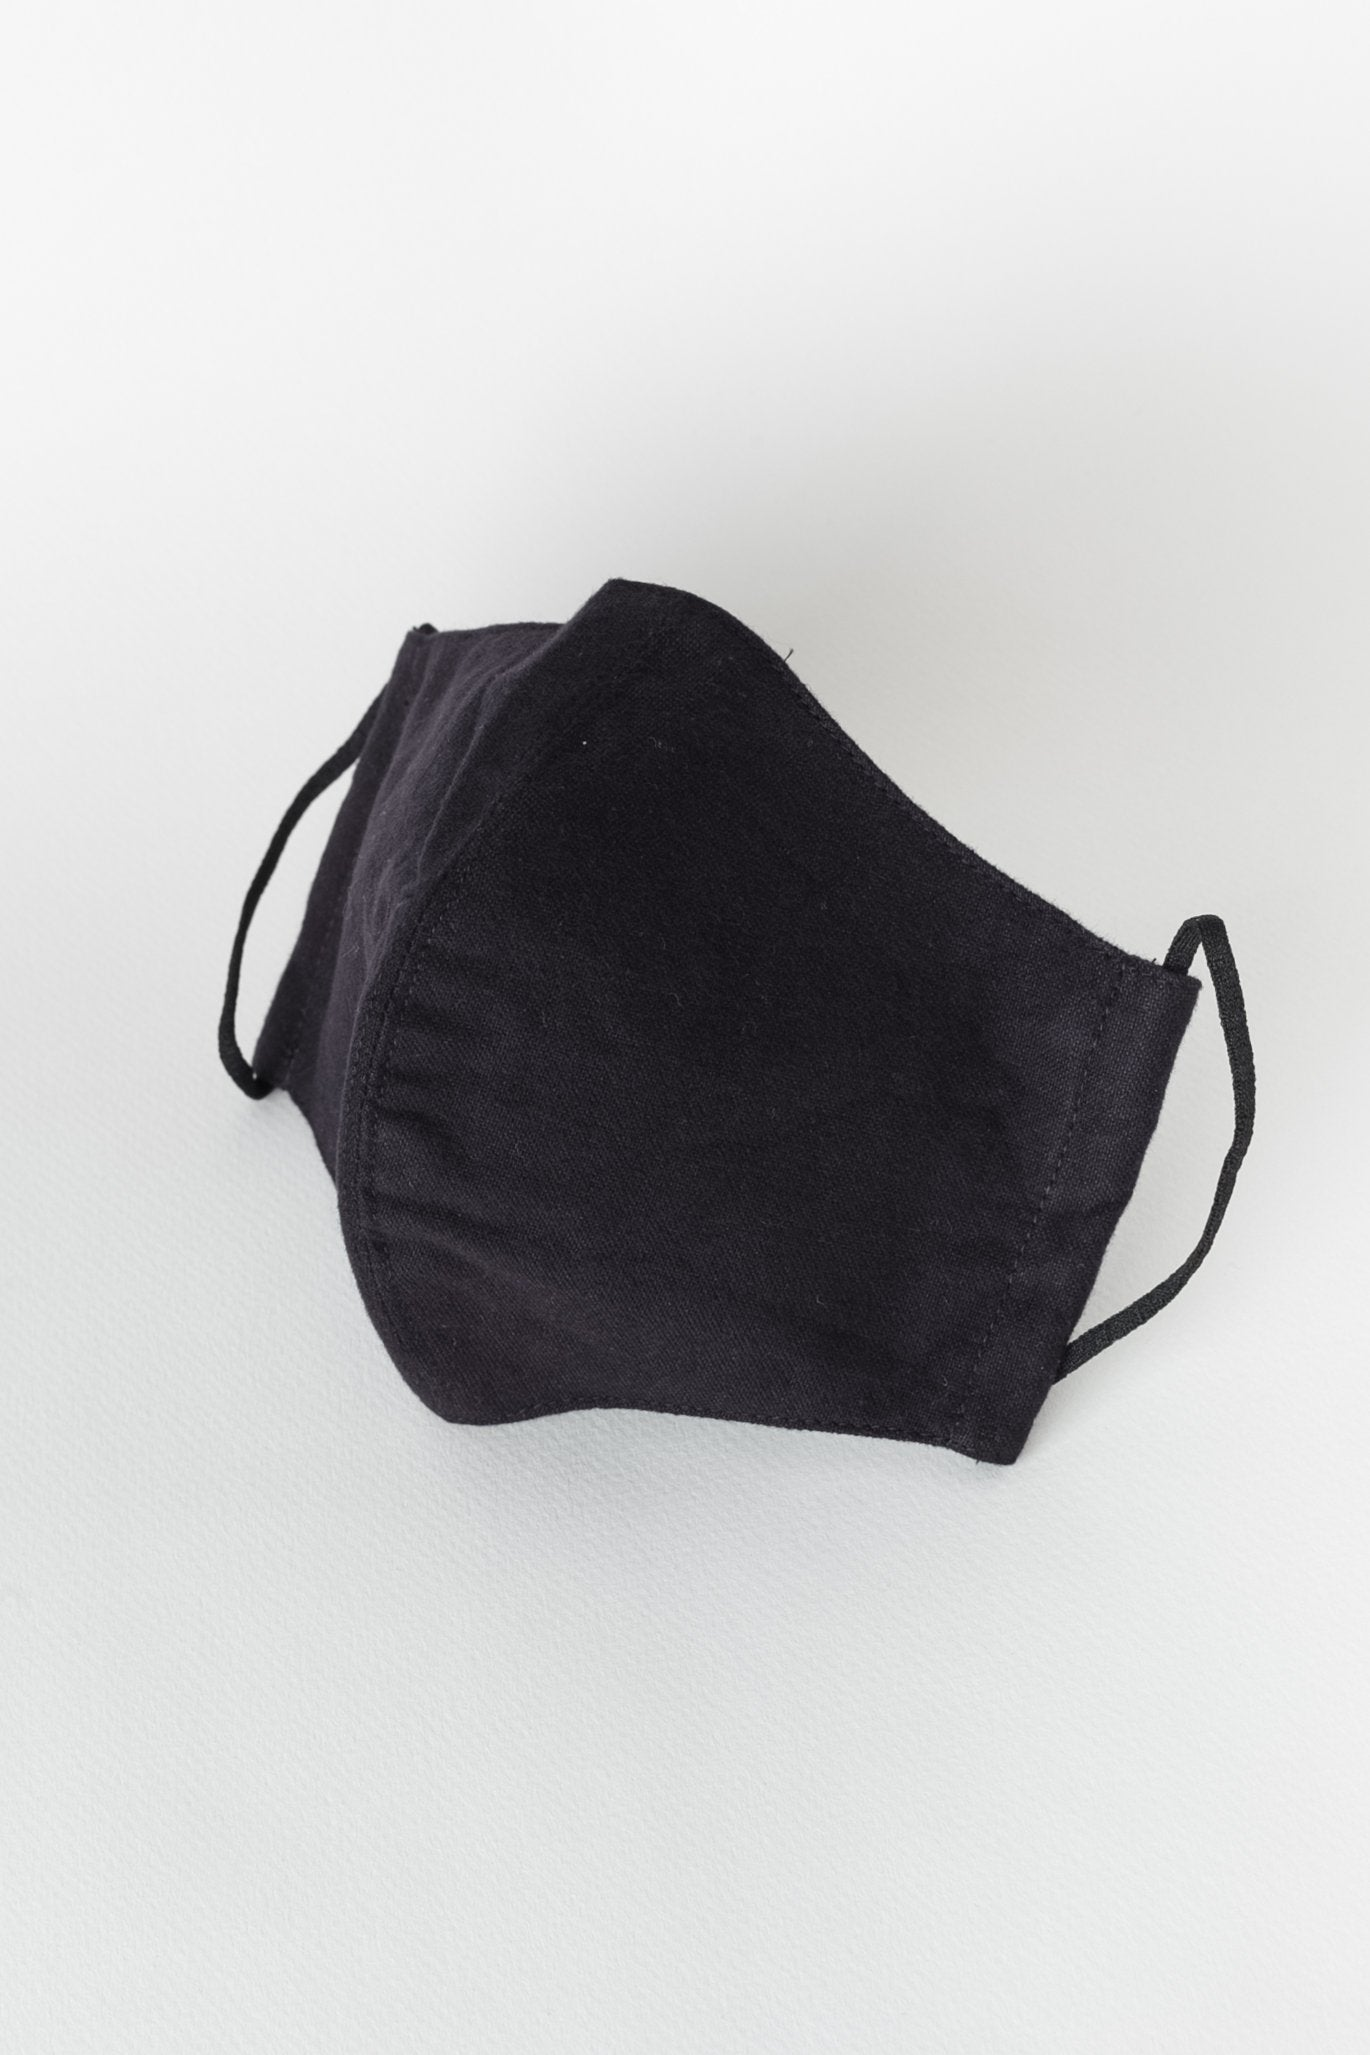 Japanese Brushed Oxford Face Mask in Black 02